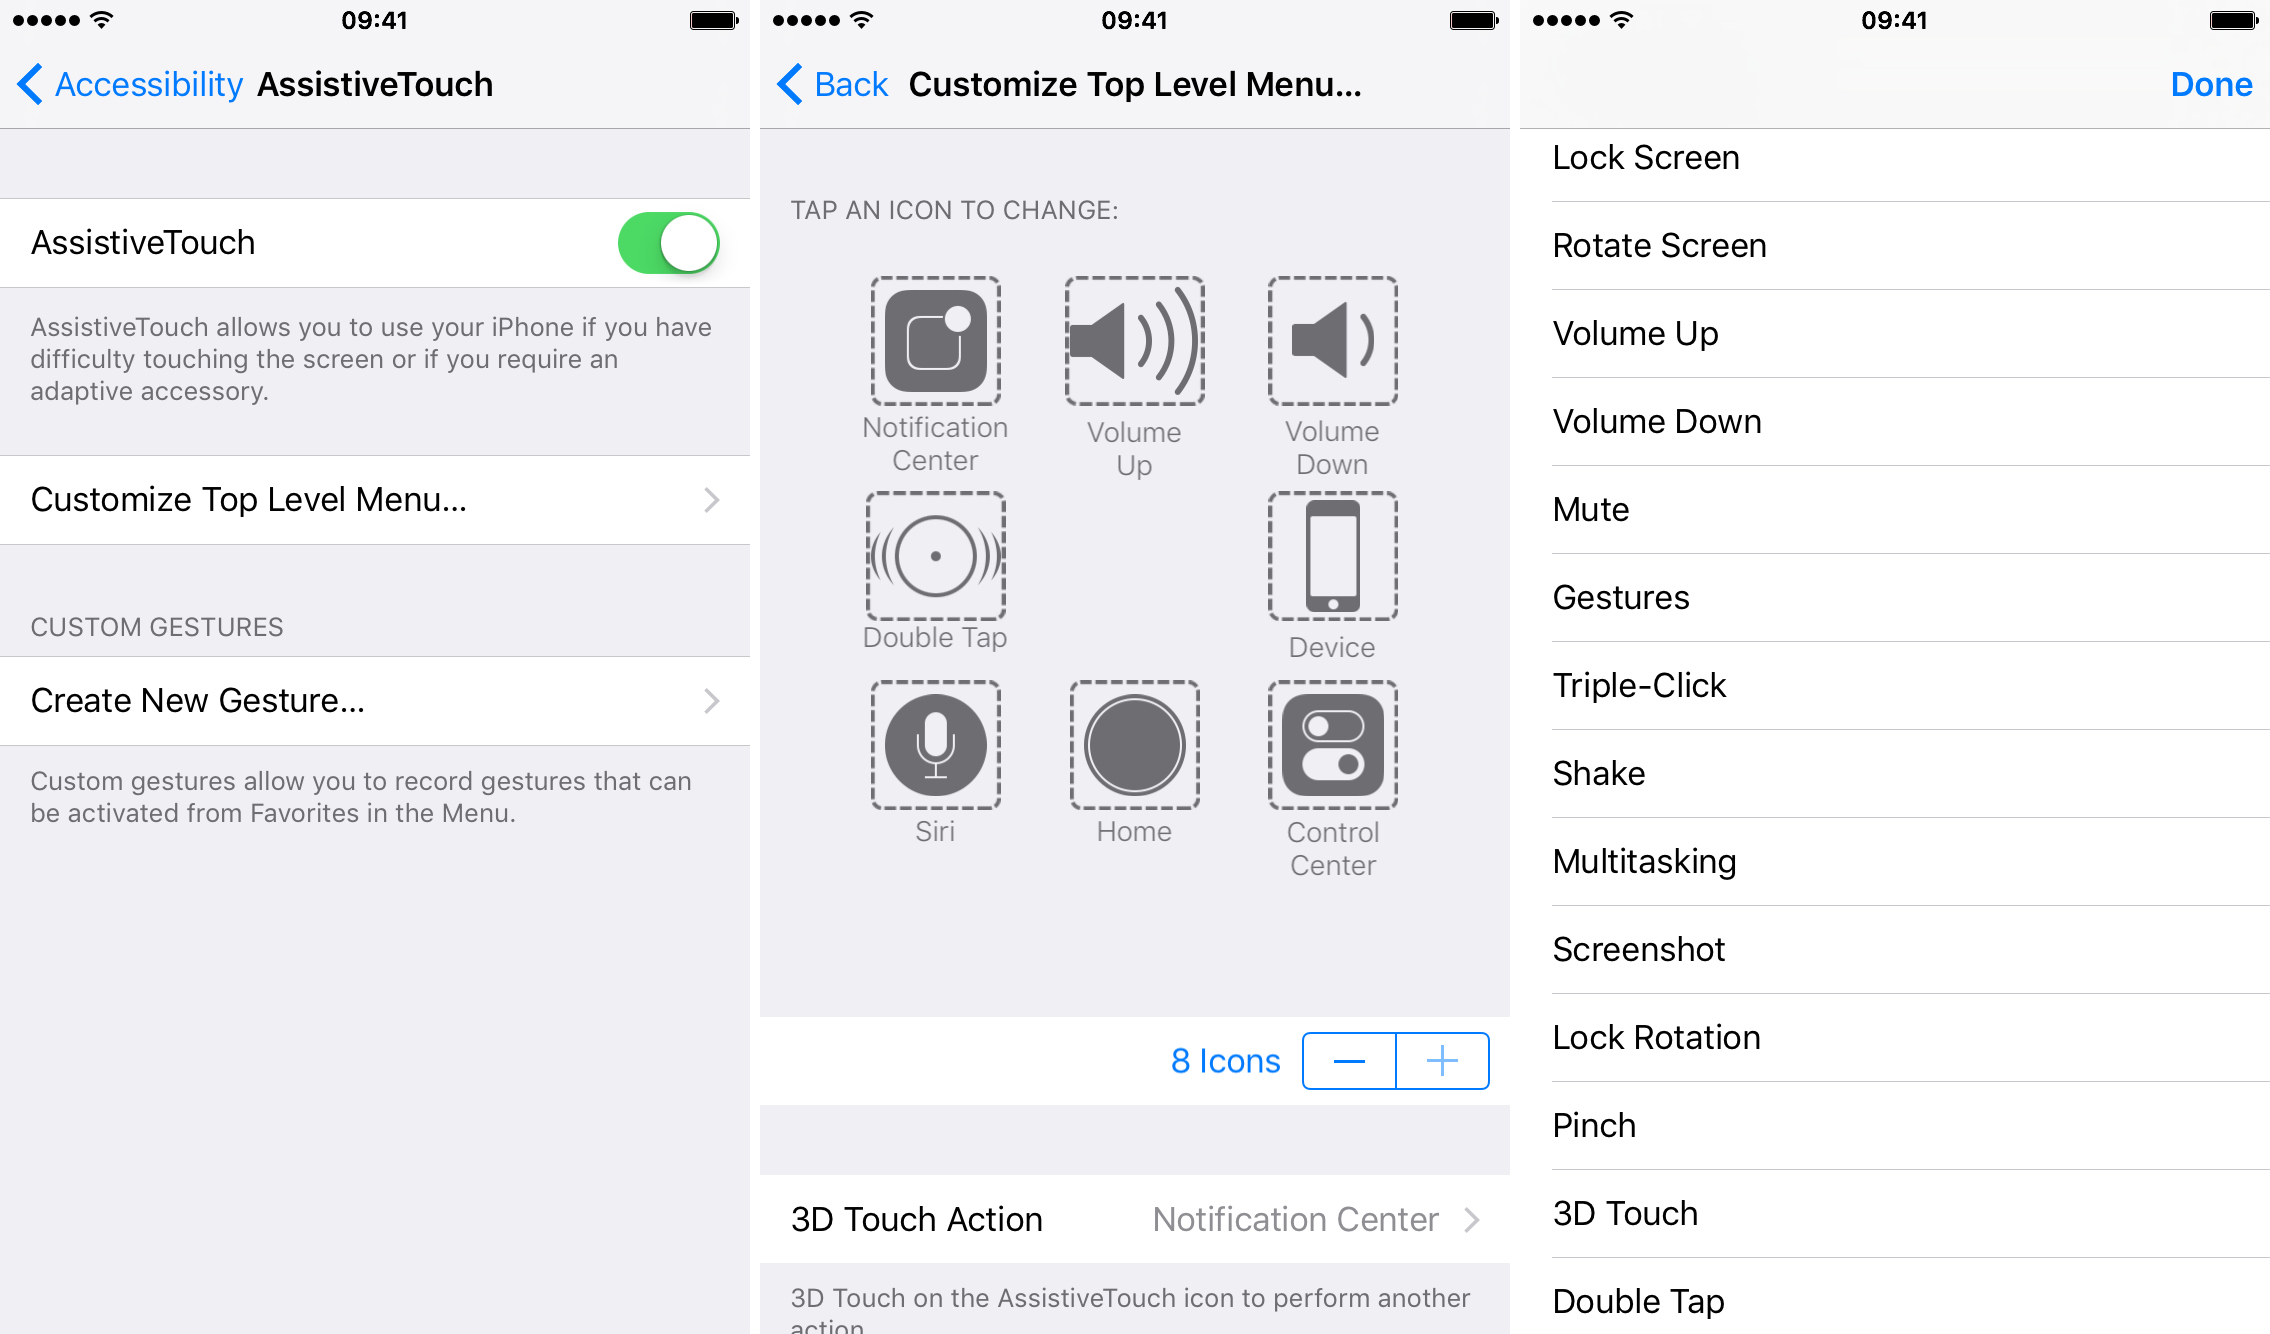 AssistiveTouch iOS 9 options